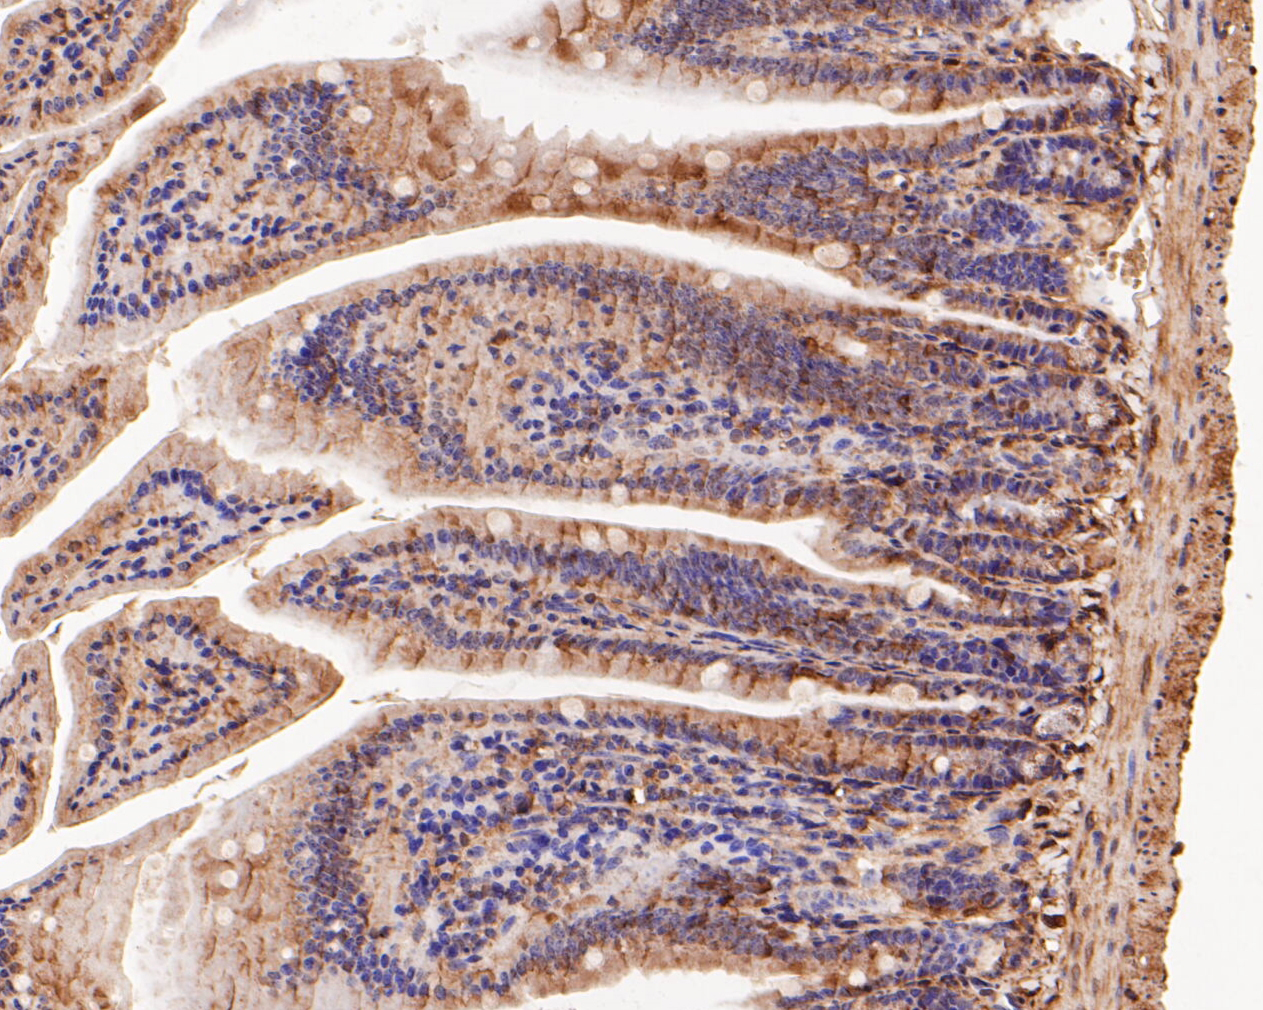 Immunohistochemical analysis of paraffin-embedded mouse colon tissue using anti-Connexin-26 antibody. The section was pre-treated using heat mediated antigen retrieval with Tris-EDTA buffer (pH 8.0-8.4) for 20 minutes.The tissues were blocked in 5% BSA for 30 minutes at room temperature, washed with ddH2O and PBS, and then probed with the primary antibody (ER1902-42, 1/50) for 30 minutes at room temperature. The detection was performed using an HRP conjugated compact polymer system. DAB was used as the chromogen. Tissues were counterstained with hematoxylin and mounted with DPX.